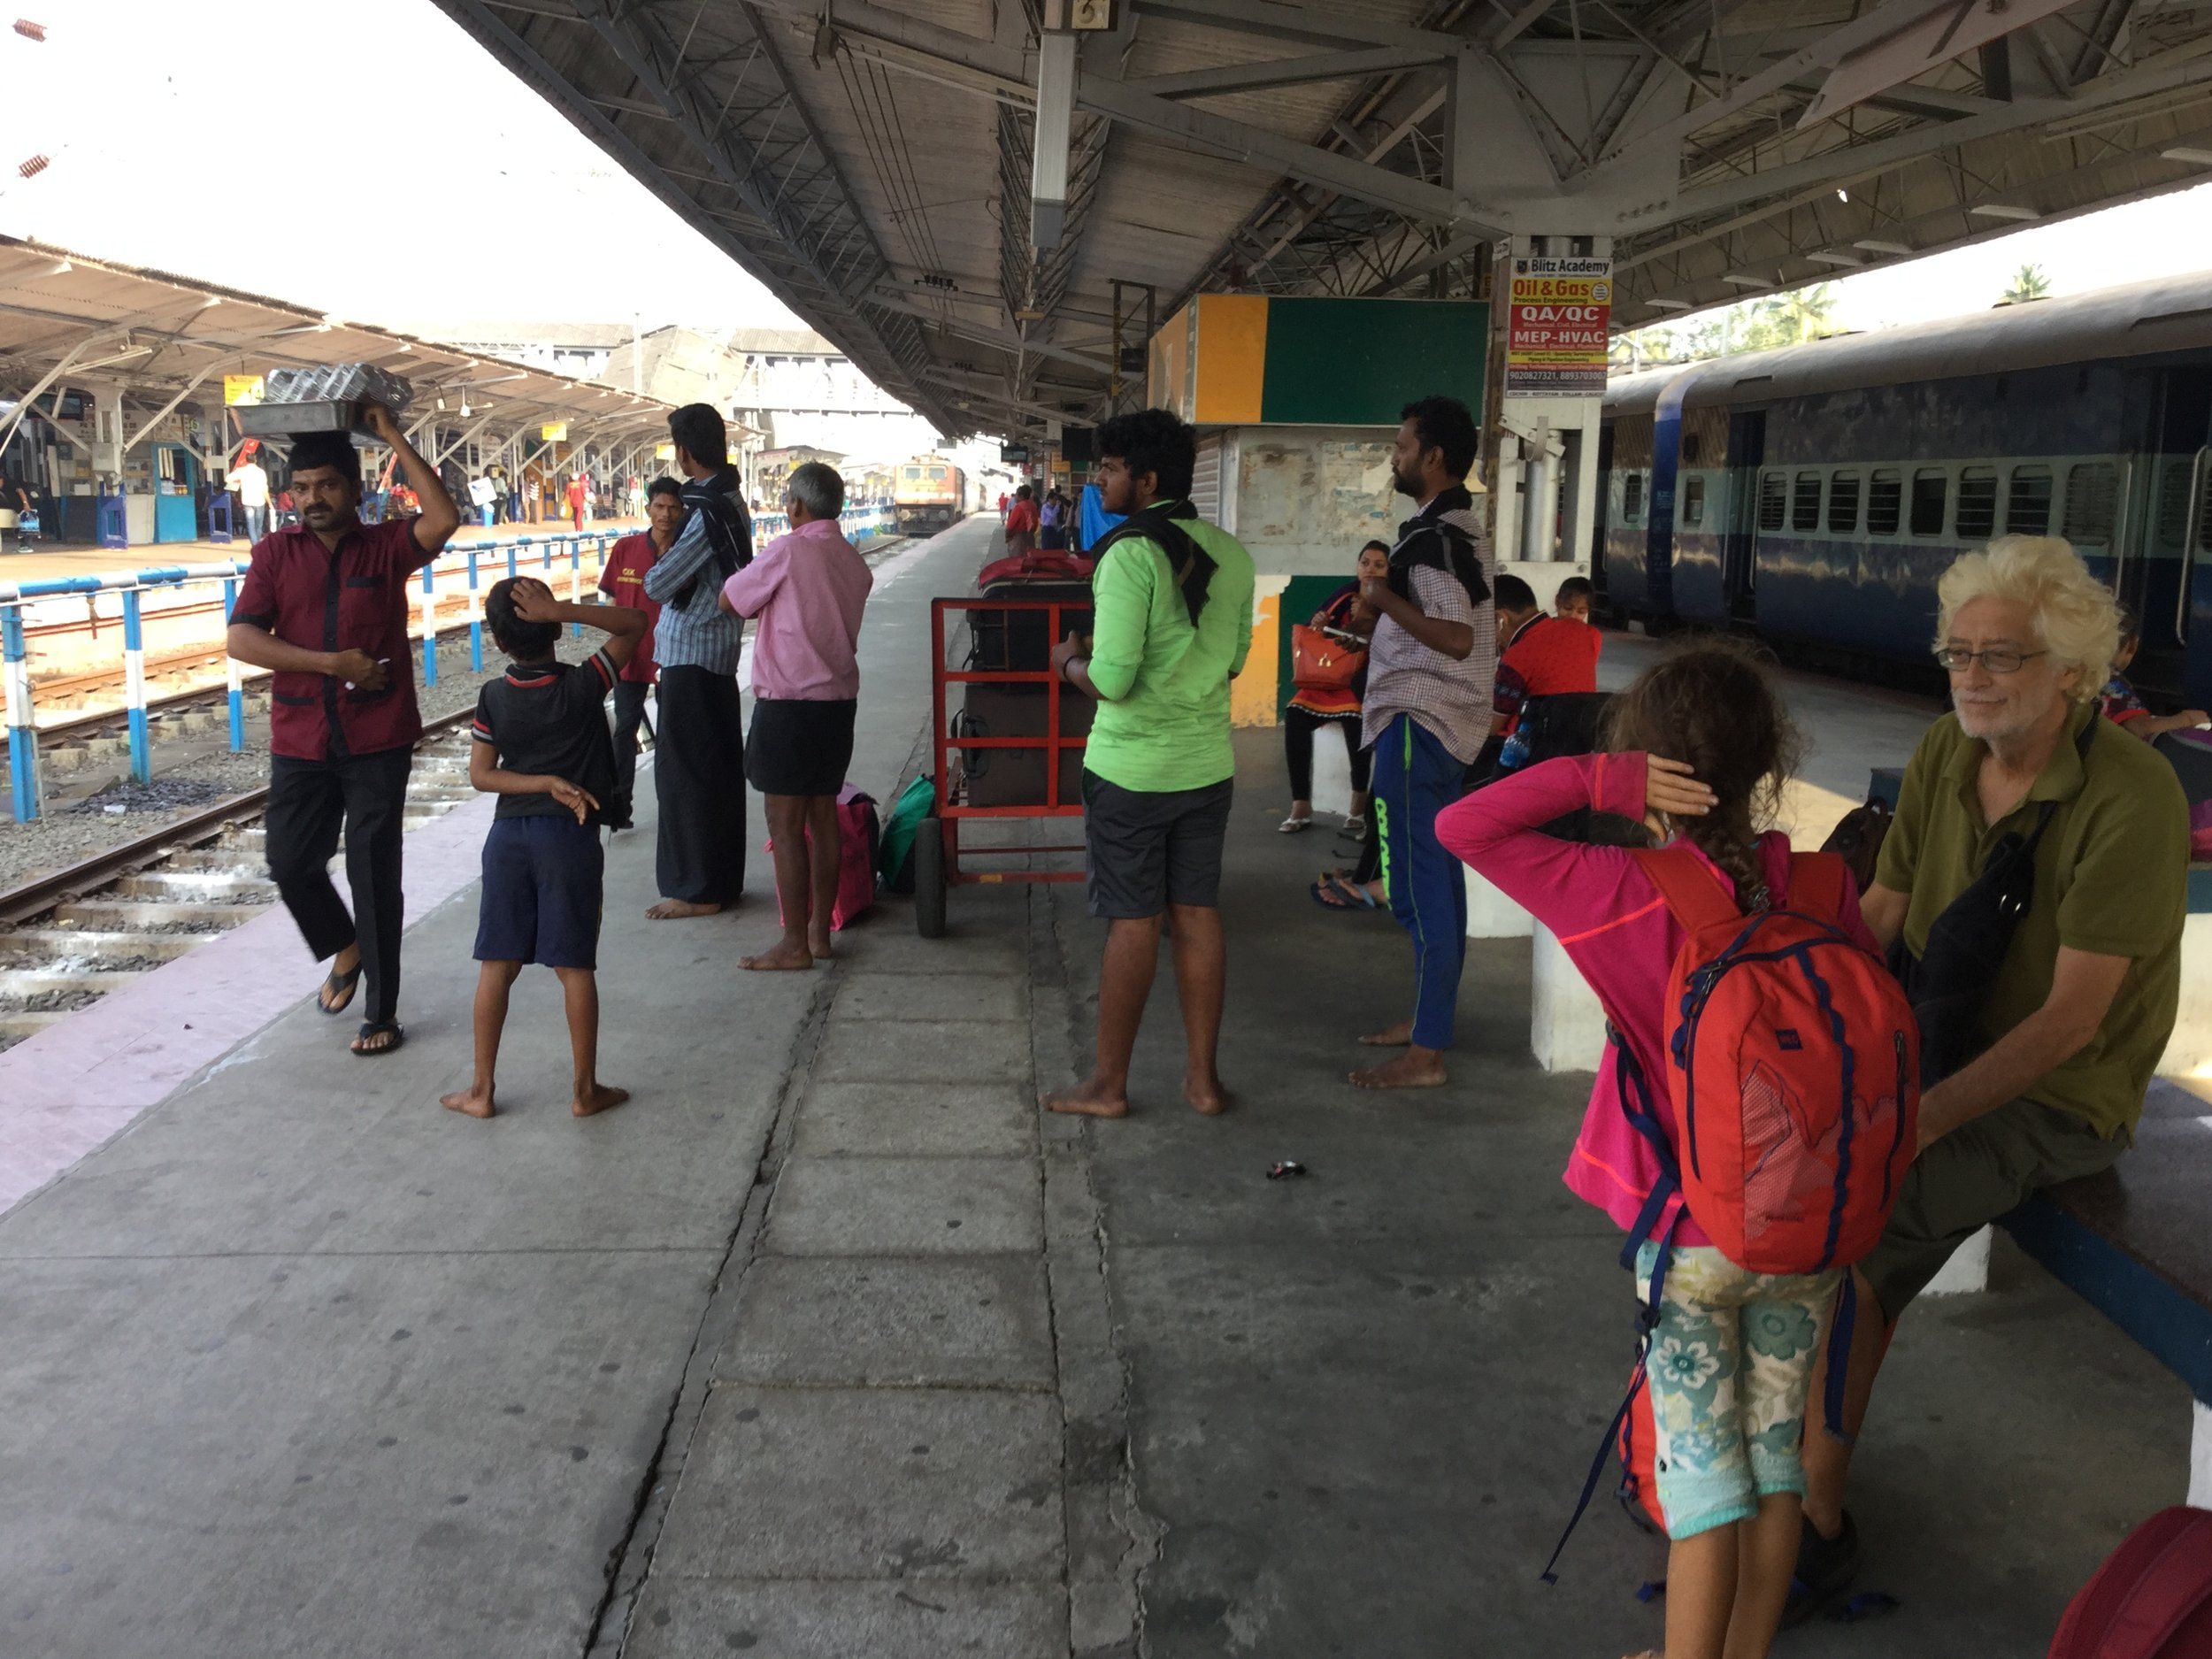 Here we are at the Kochi railway station (which is actually called Ernakulam Junction) waiting to take a local train to Alleppey (also called Alapphuza). The ride is about 80 minutes and cost all of 145 rupees ($ 2.90 CDN) for all three of us.